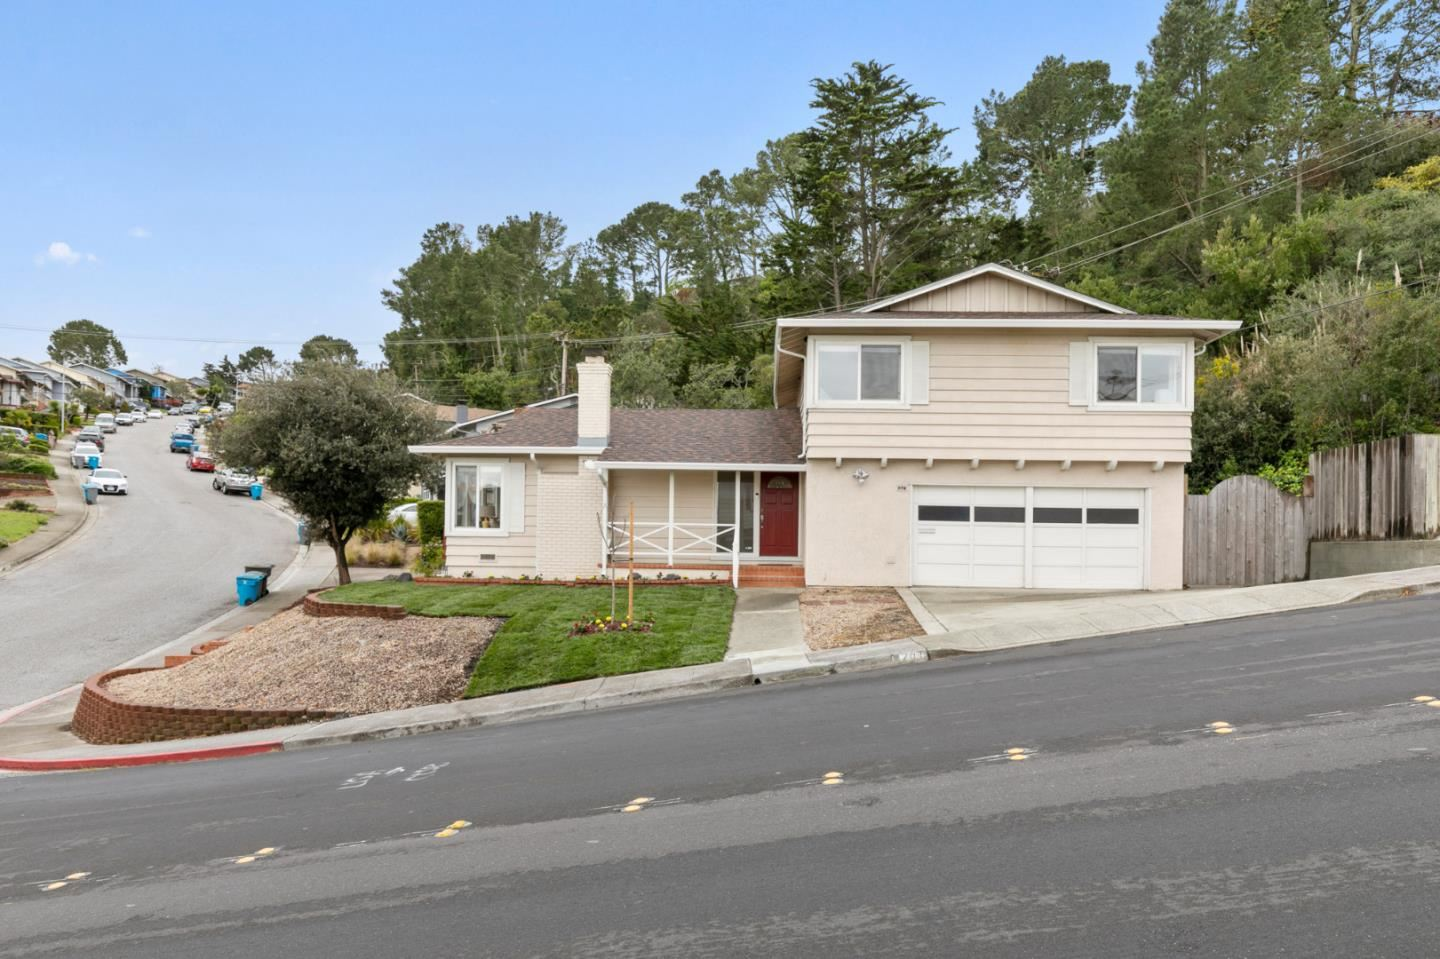 Photo for 201 Amador AVE, SAN BRUNO, CA 94066 (MLS # ML81787707)